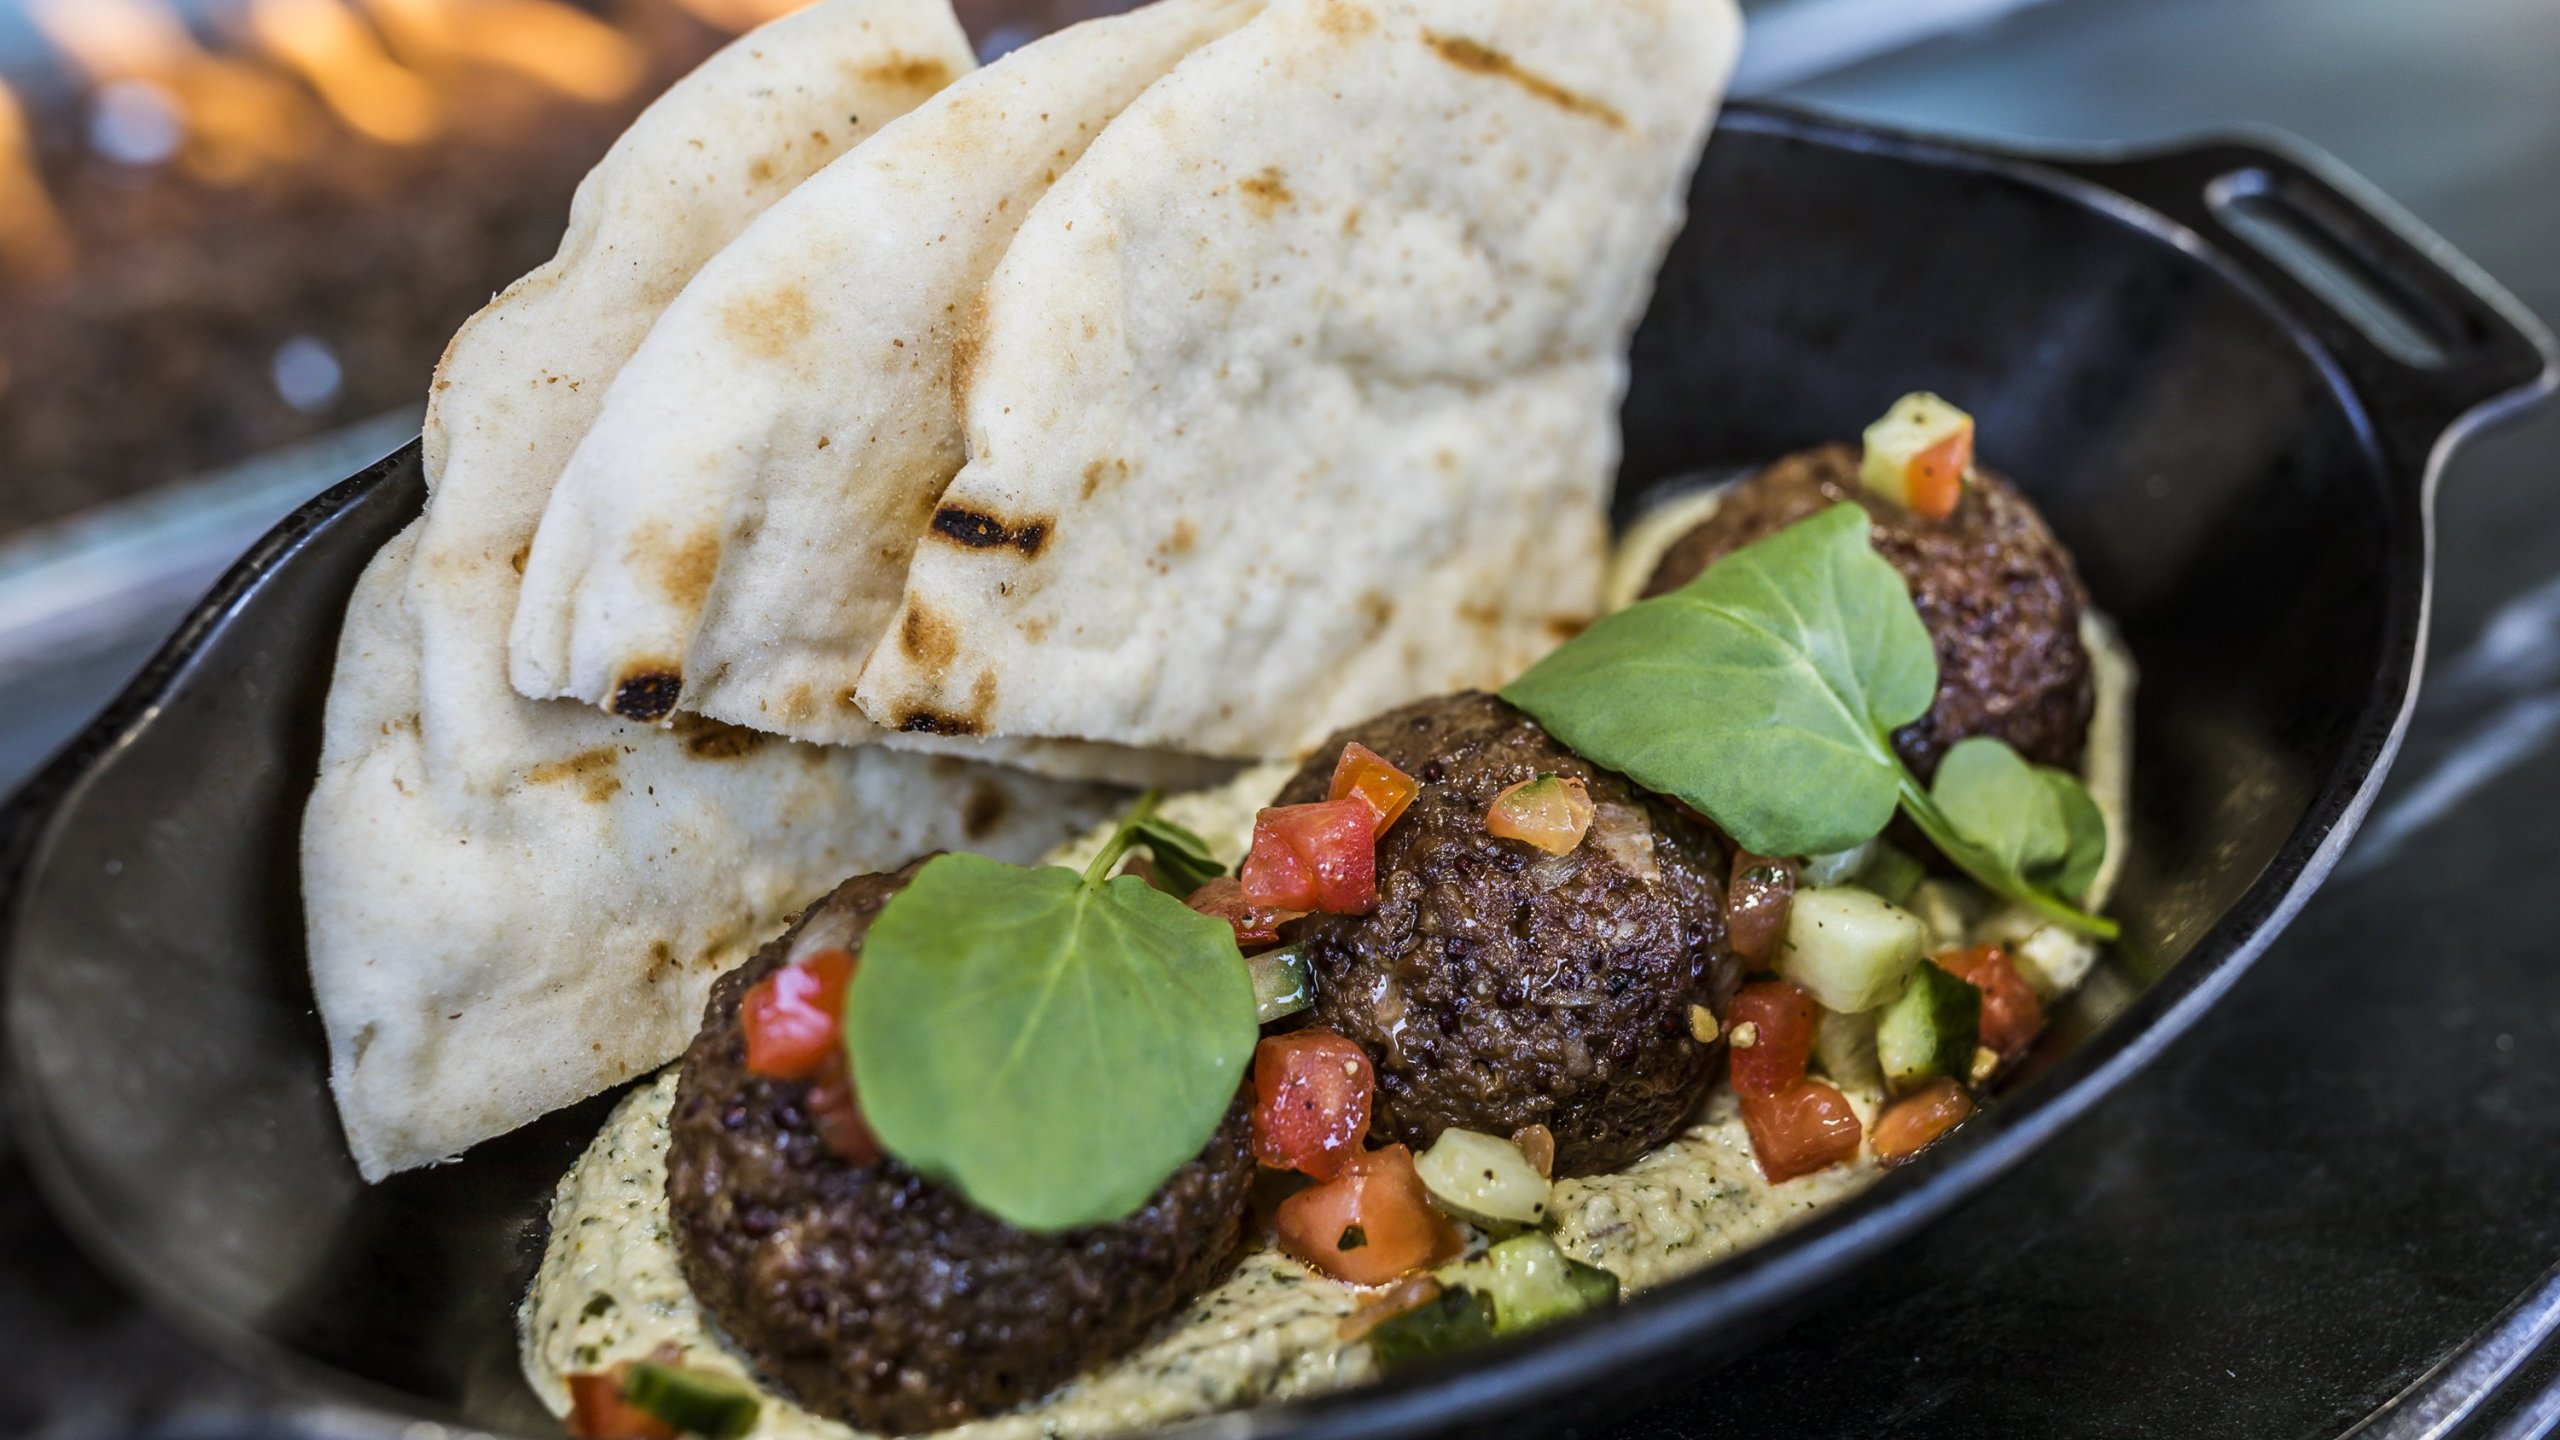 """A meal served at Star Wars: Galaxy's Edge called a """"Felucian Garden Spread."""" (Credit: Disney)"""